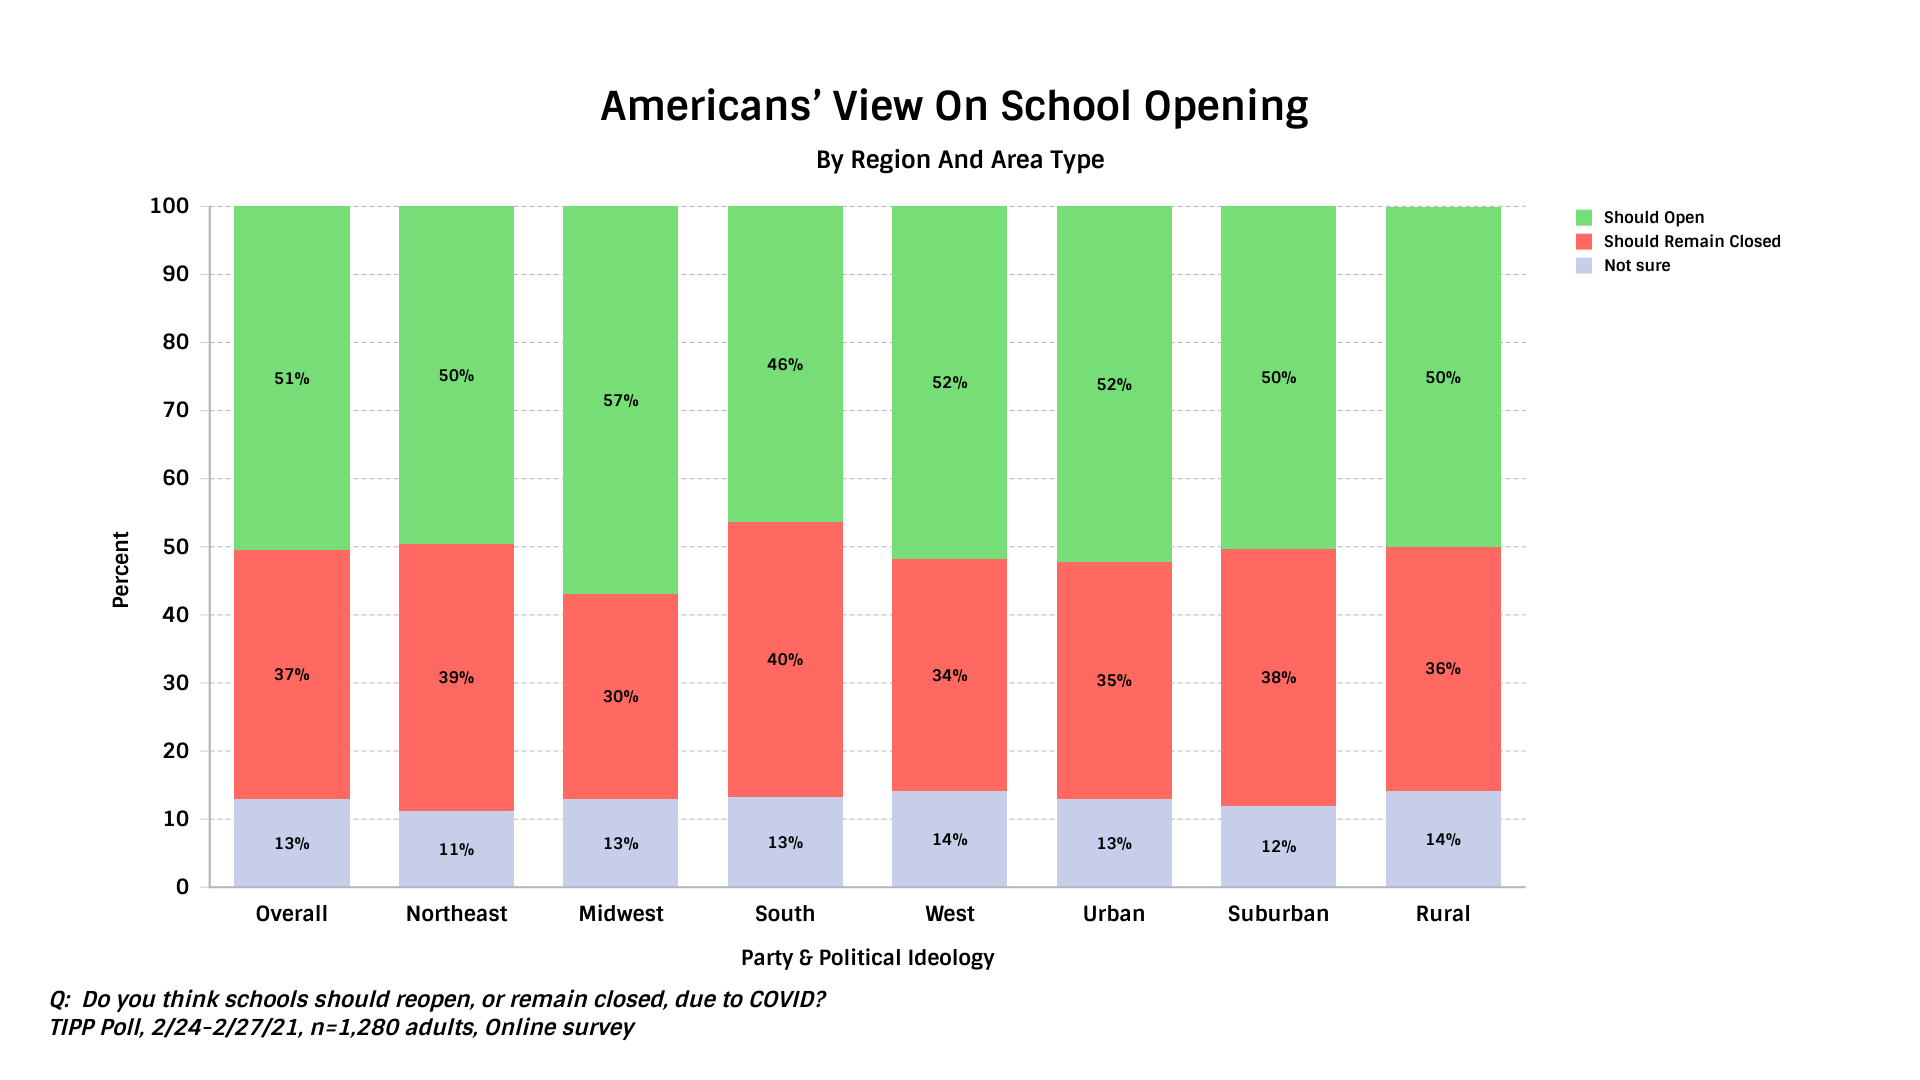 TIPP Poll Result, Americans' view on schools opening during COVID19 by region and area type